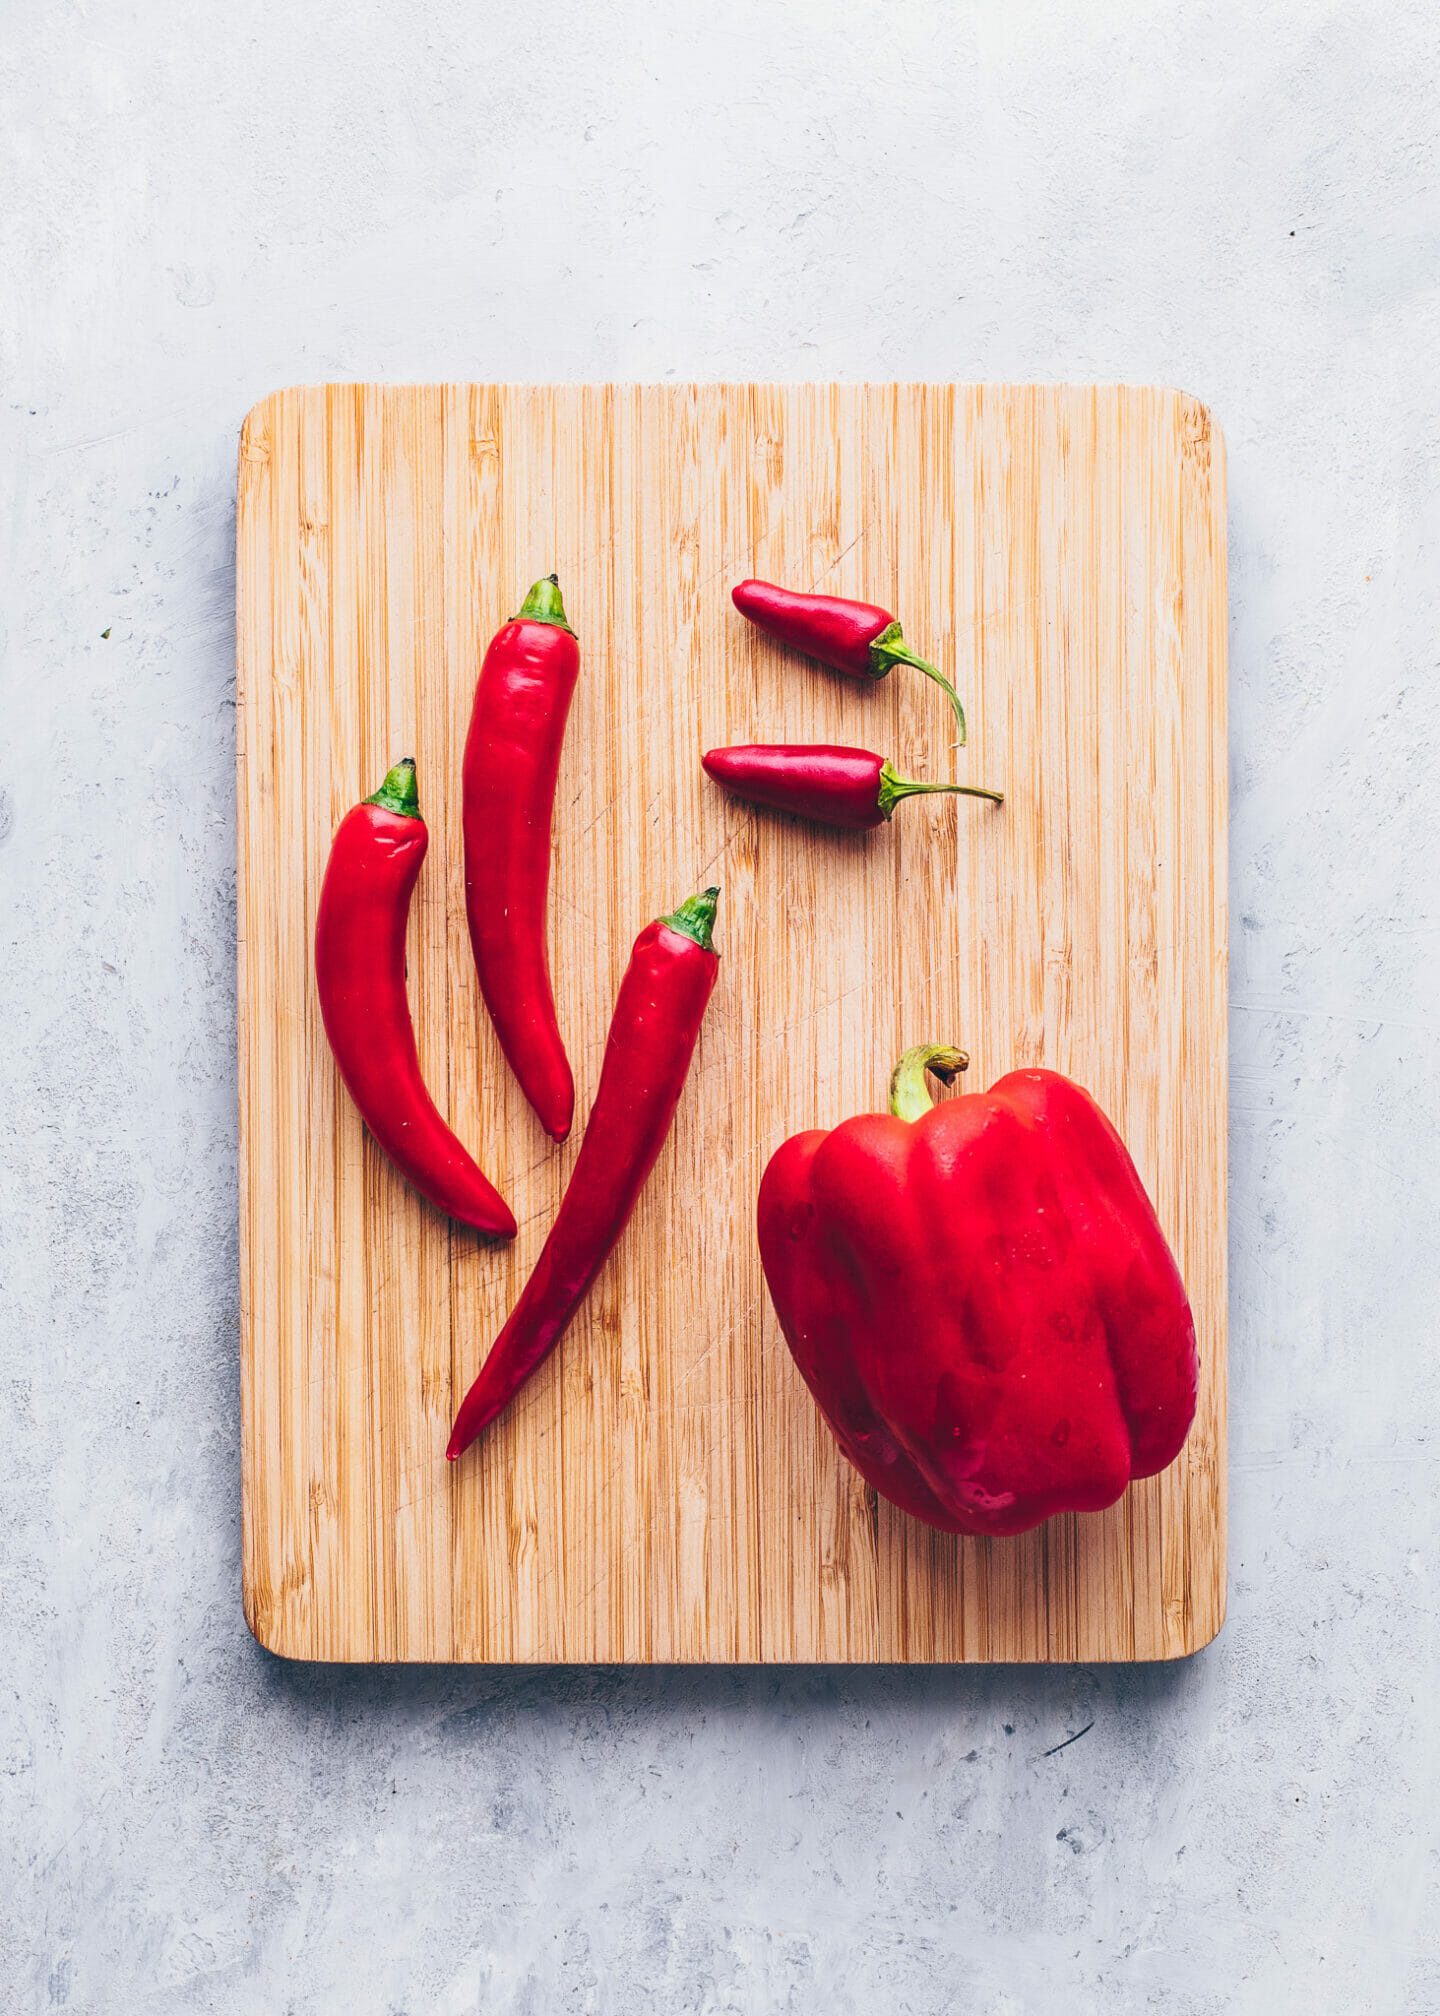 Red Chili Peppers for Thai Sweet Chili Sauce